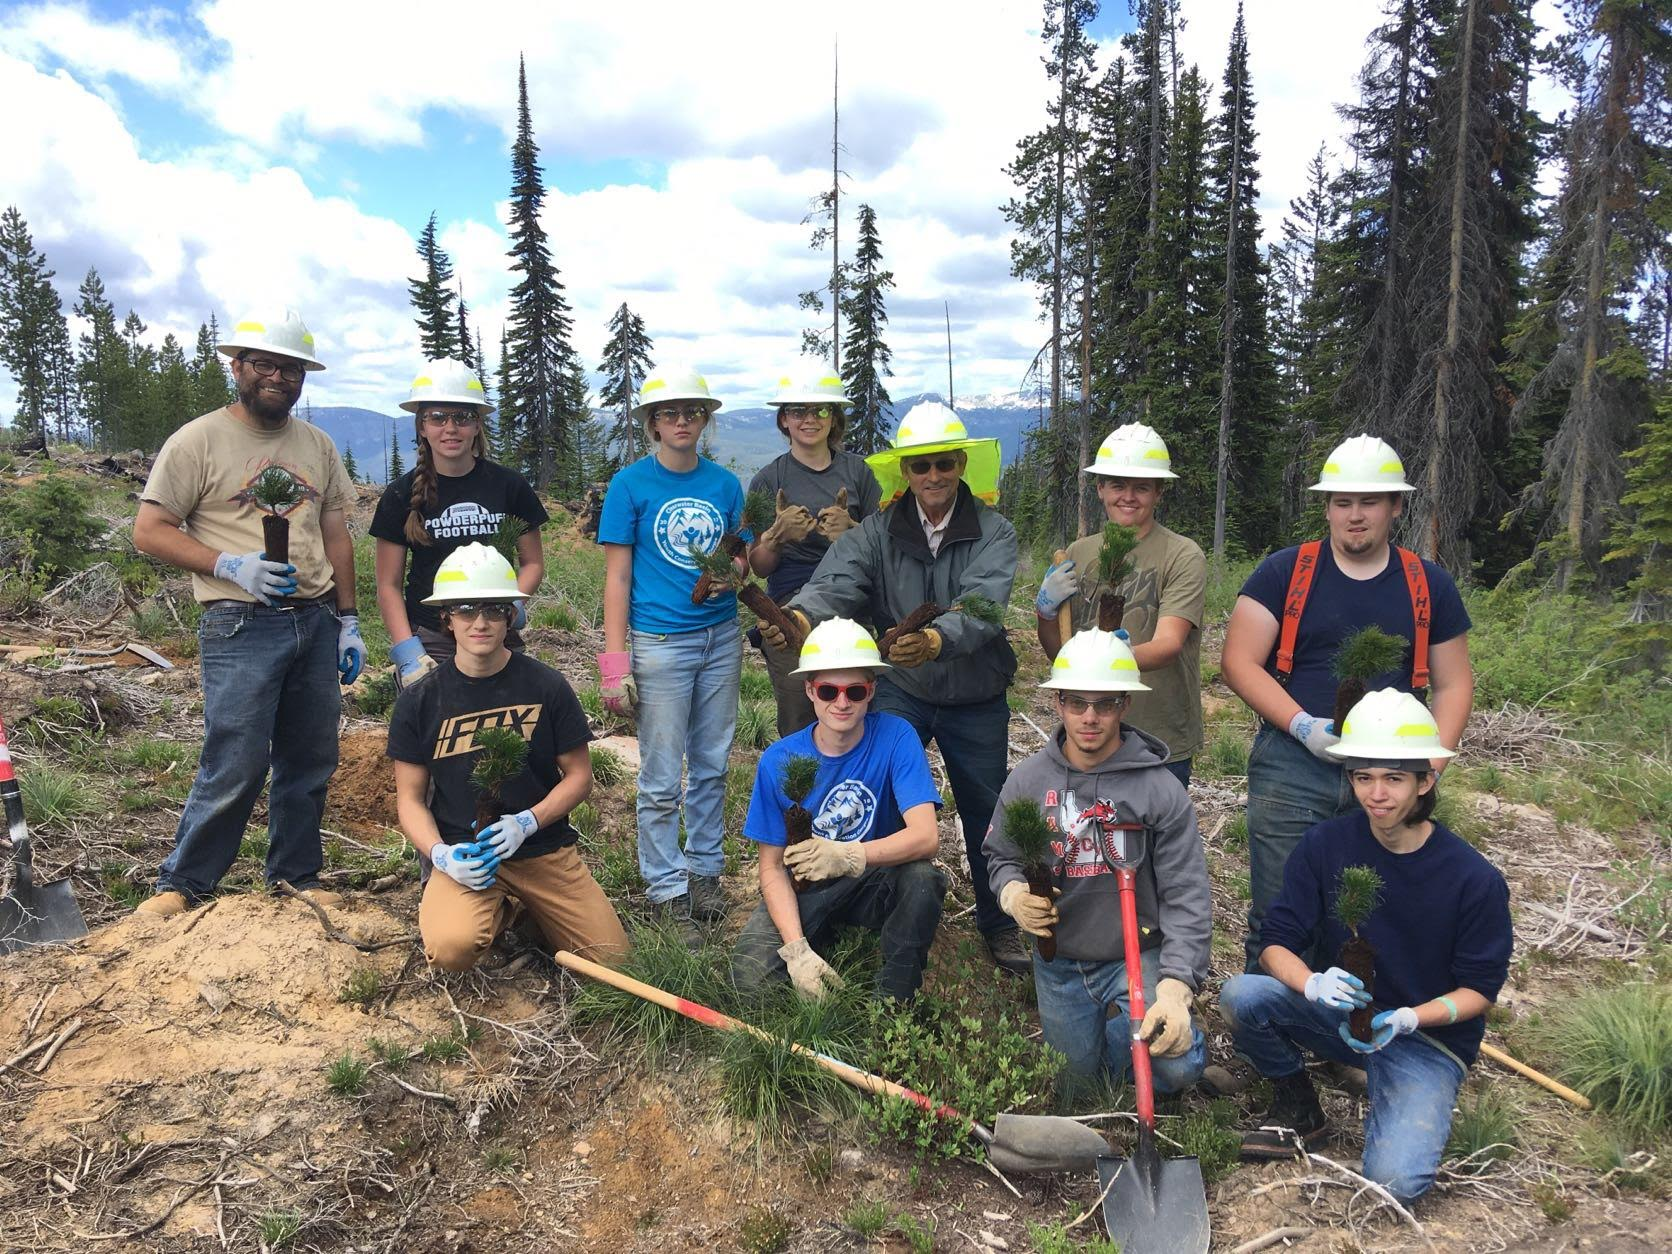 A group of 11 people from the Kooskia CBYCC crews pose in the woods where they had been planting seedlings.